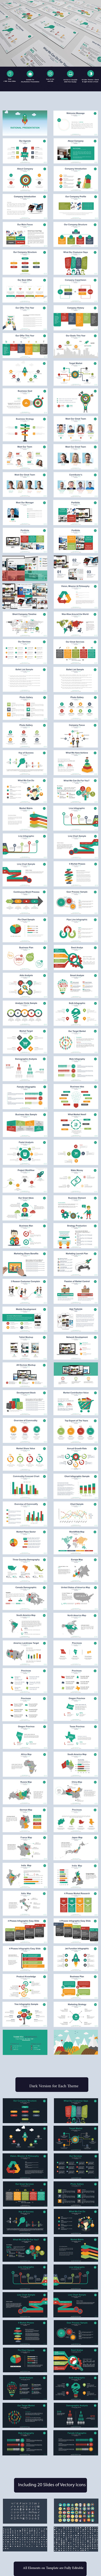 Rational PowerPoint Presentation Template - PowerPoint Templates Presentation Templates